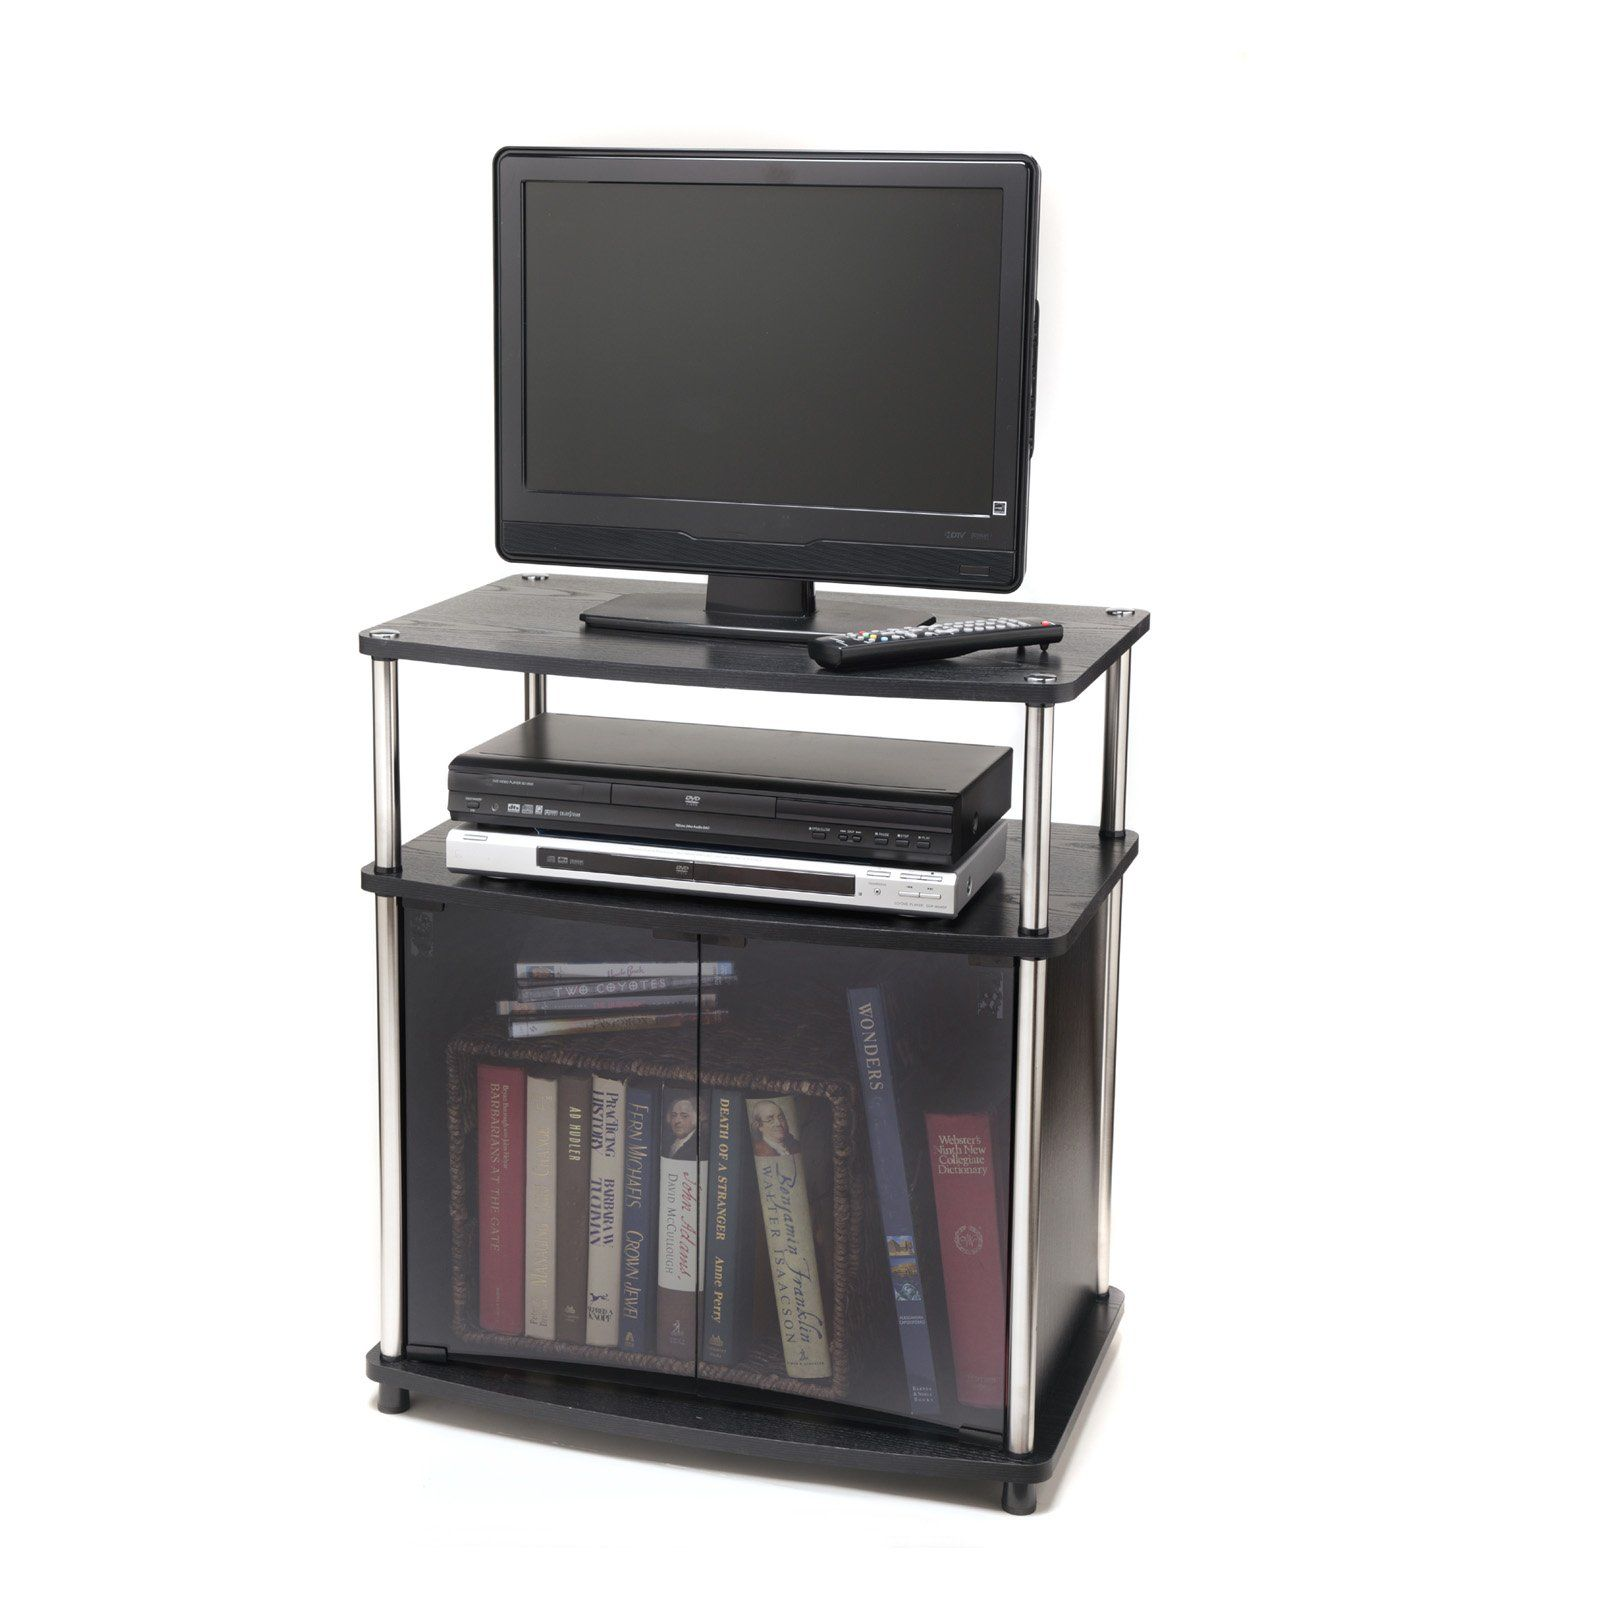 Convenience Concepts Designs2go Tv Stand With Cabinet Tv Stand With Glass Doors Convenience Concepts Tv Stand Cabinet Convenience concepts tv stand